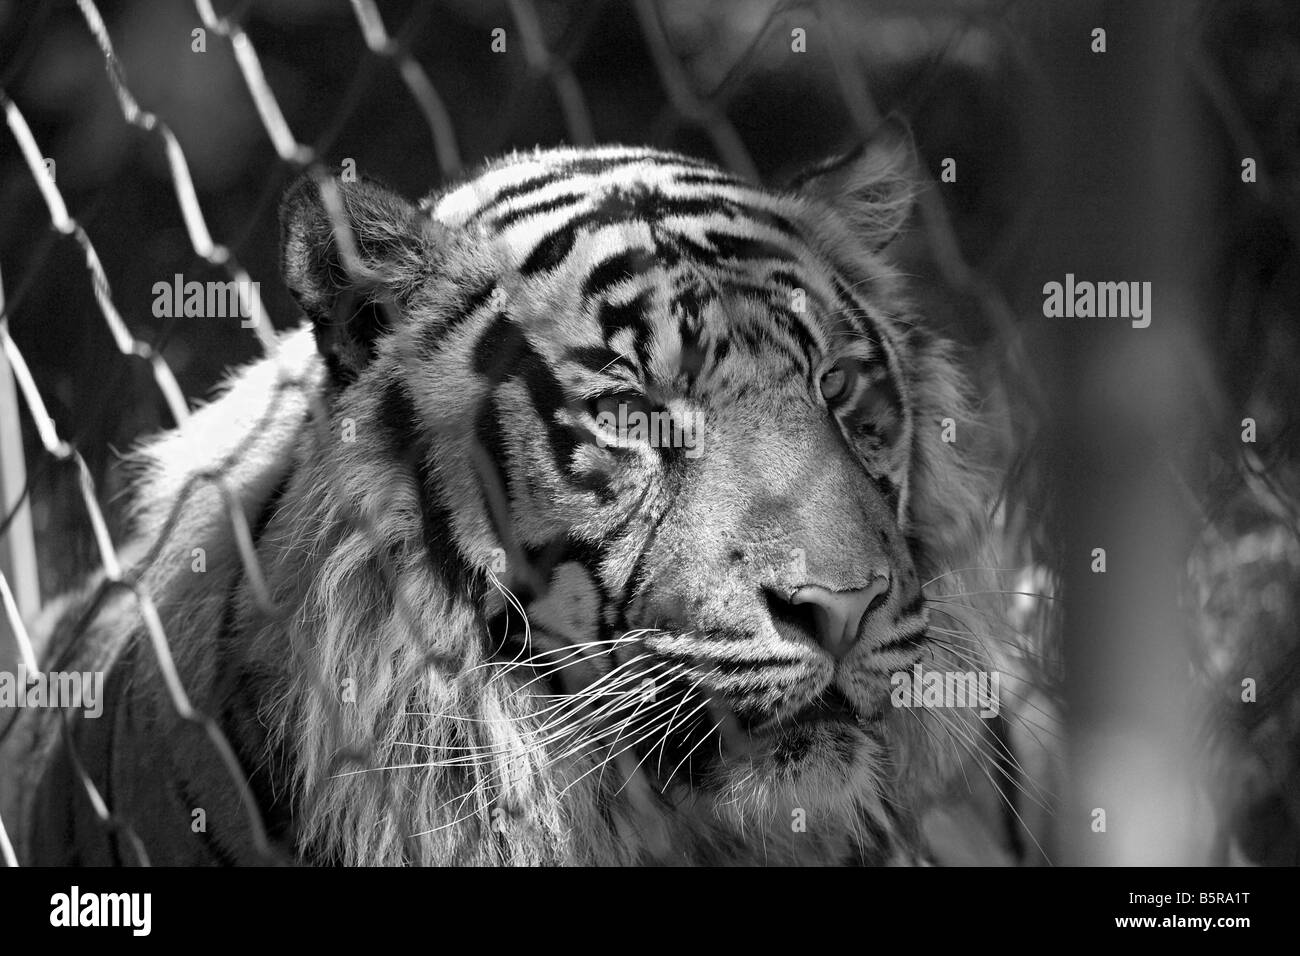 A captive tiger in a zoo in black and white - Stock Image